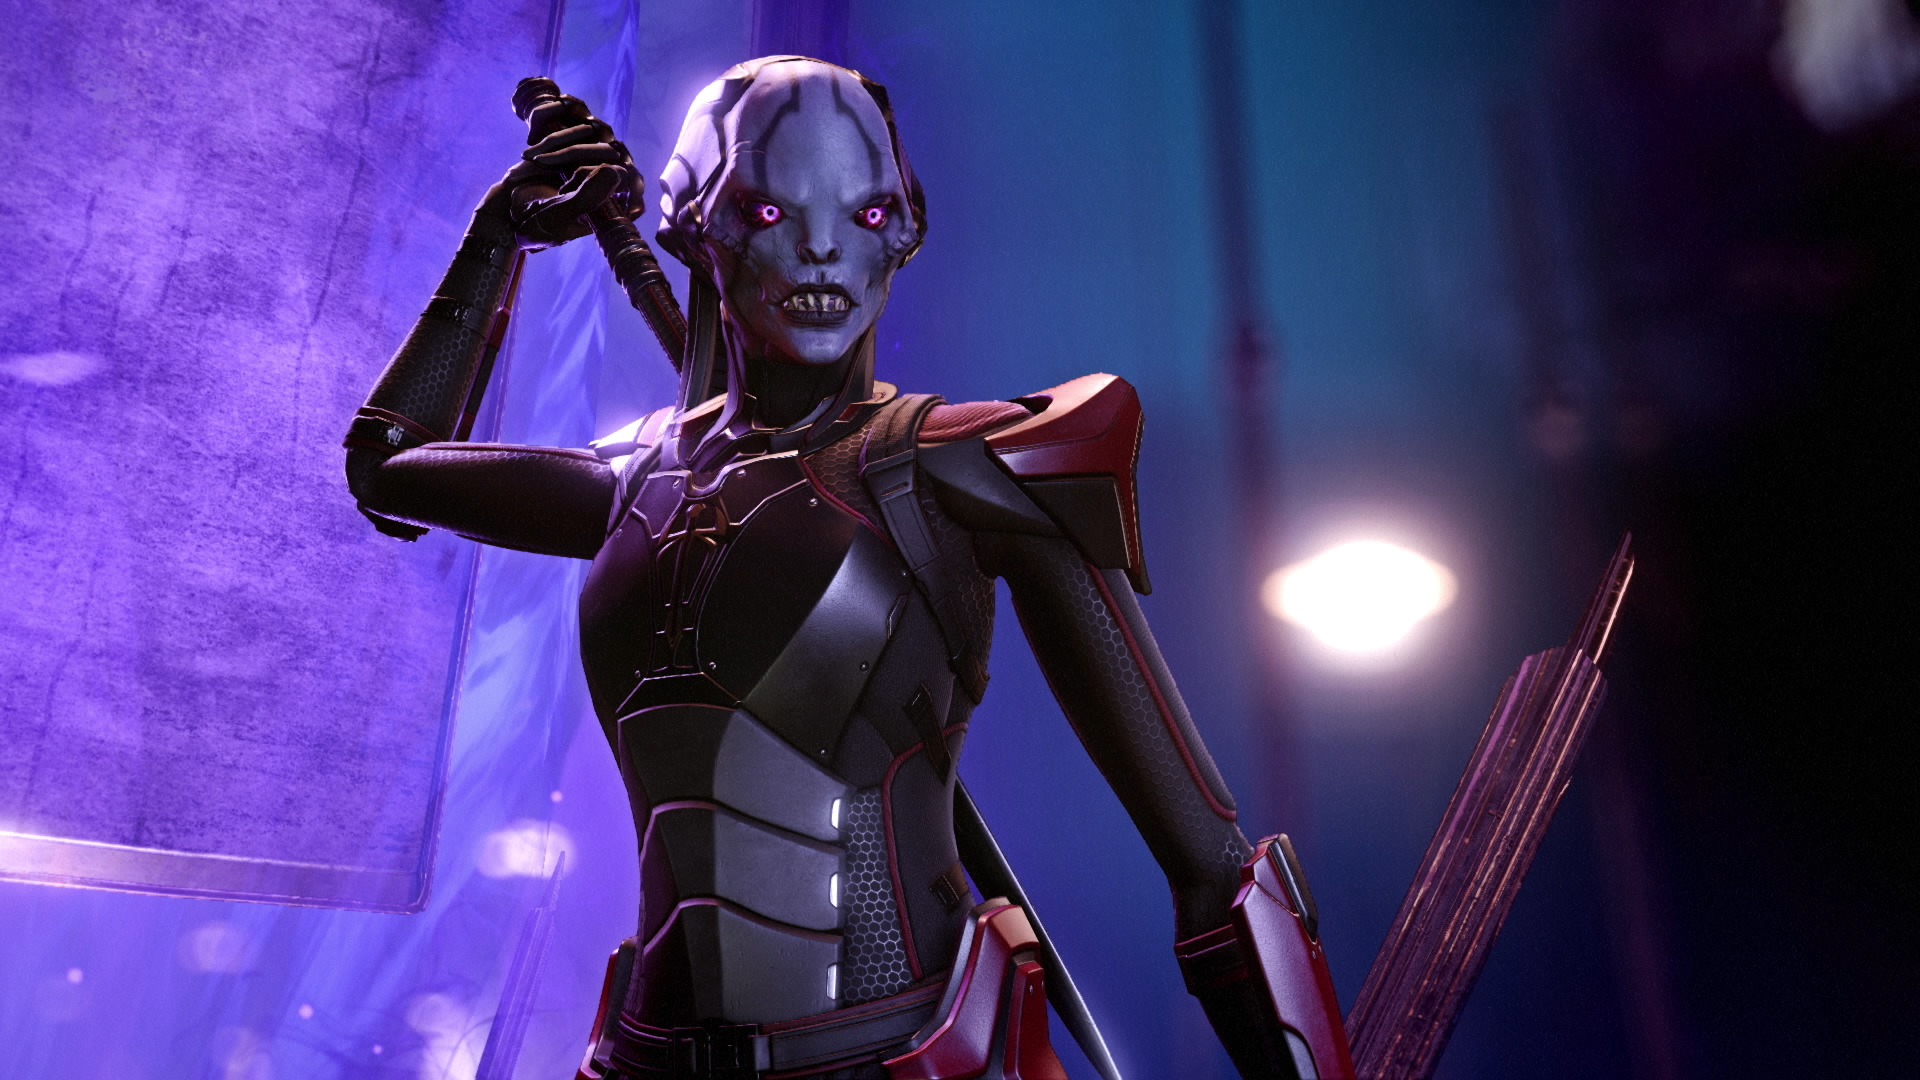 download xcom 2 war of the chosen cracked by codex include longwar mod v1.5 all dlc and latest update mirrorace multiup